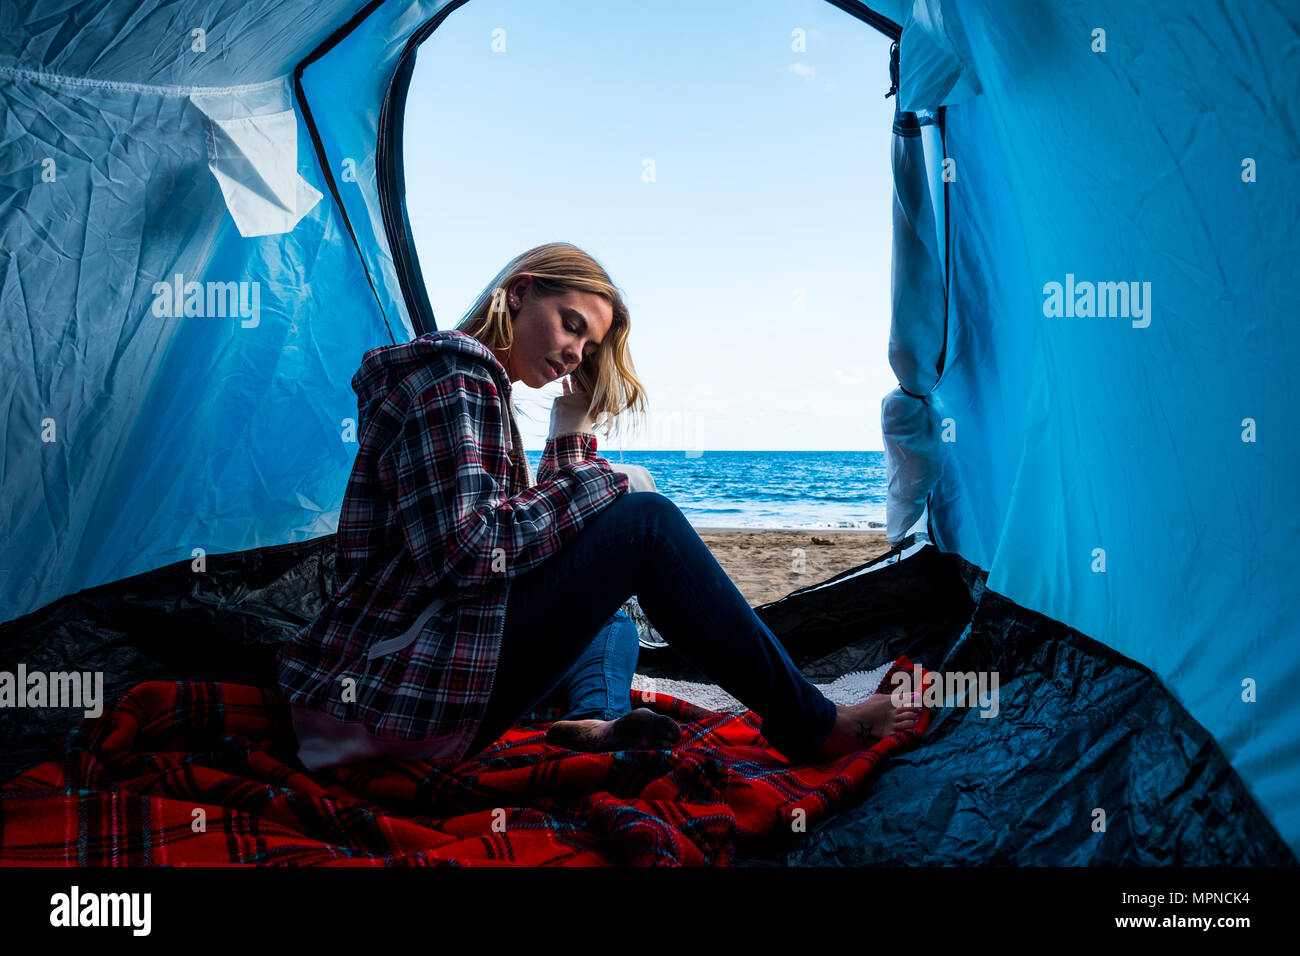 beautiful caucasian blonde young woman in a tent on the beach near the ocean live an alternative vacation lifestyle full of freedom and independence - Stock Image